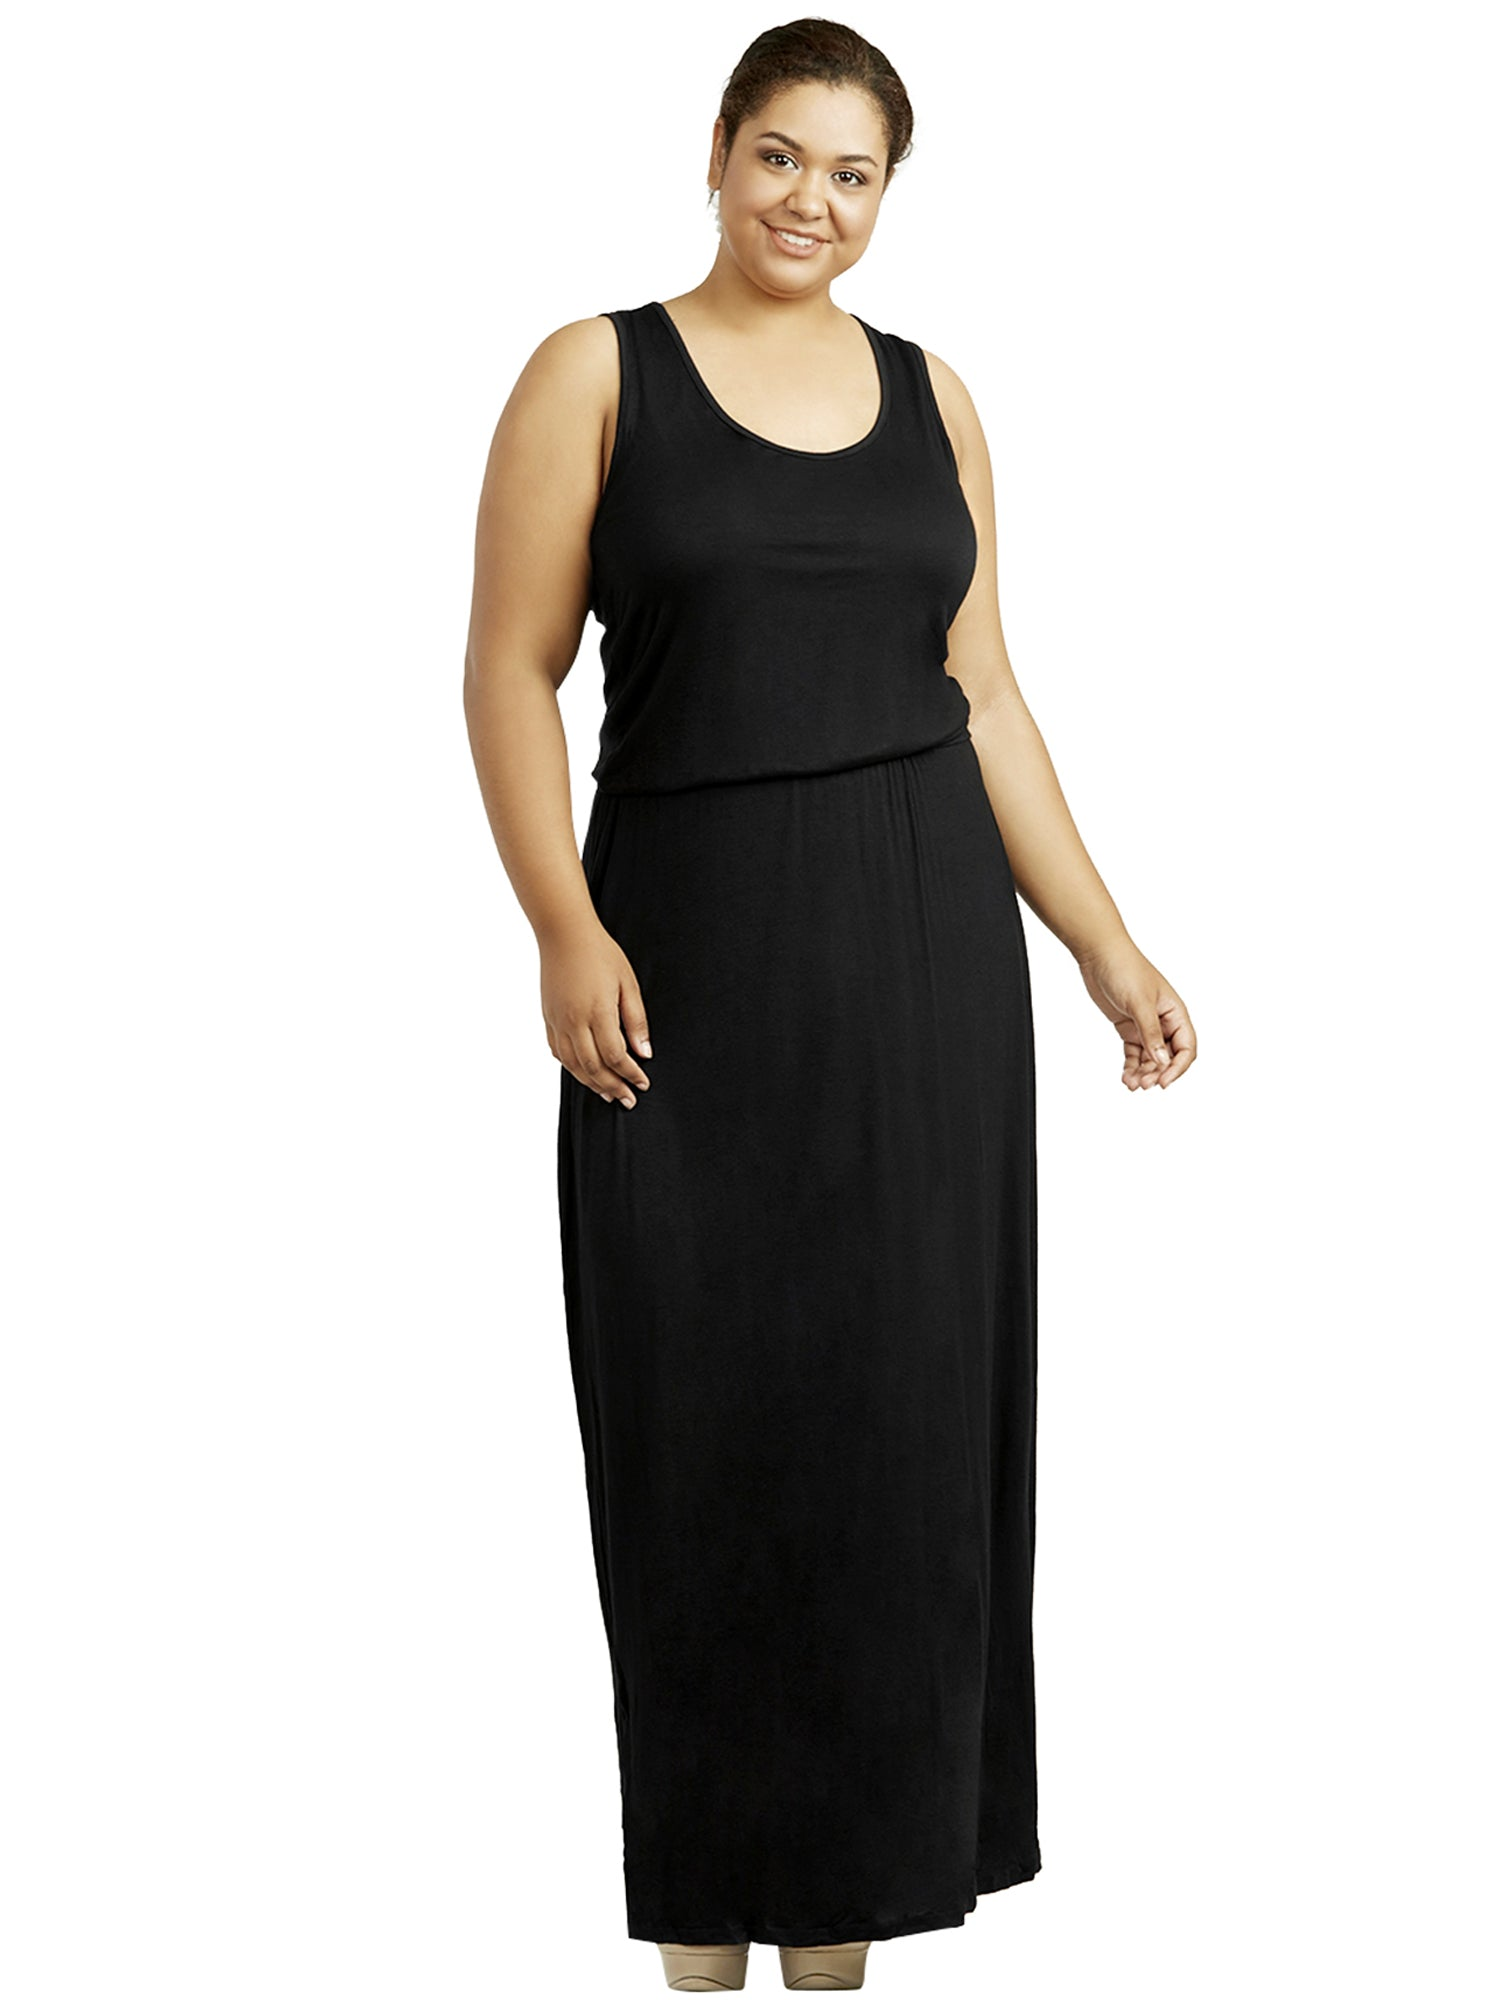 Womens Plus Size Black Elastic Waist Long Dress